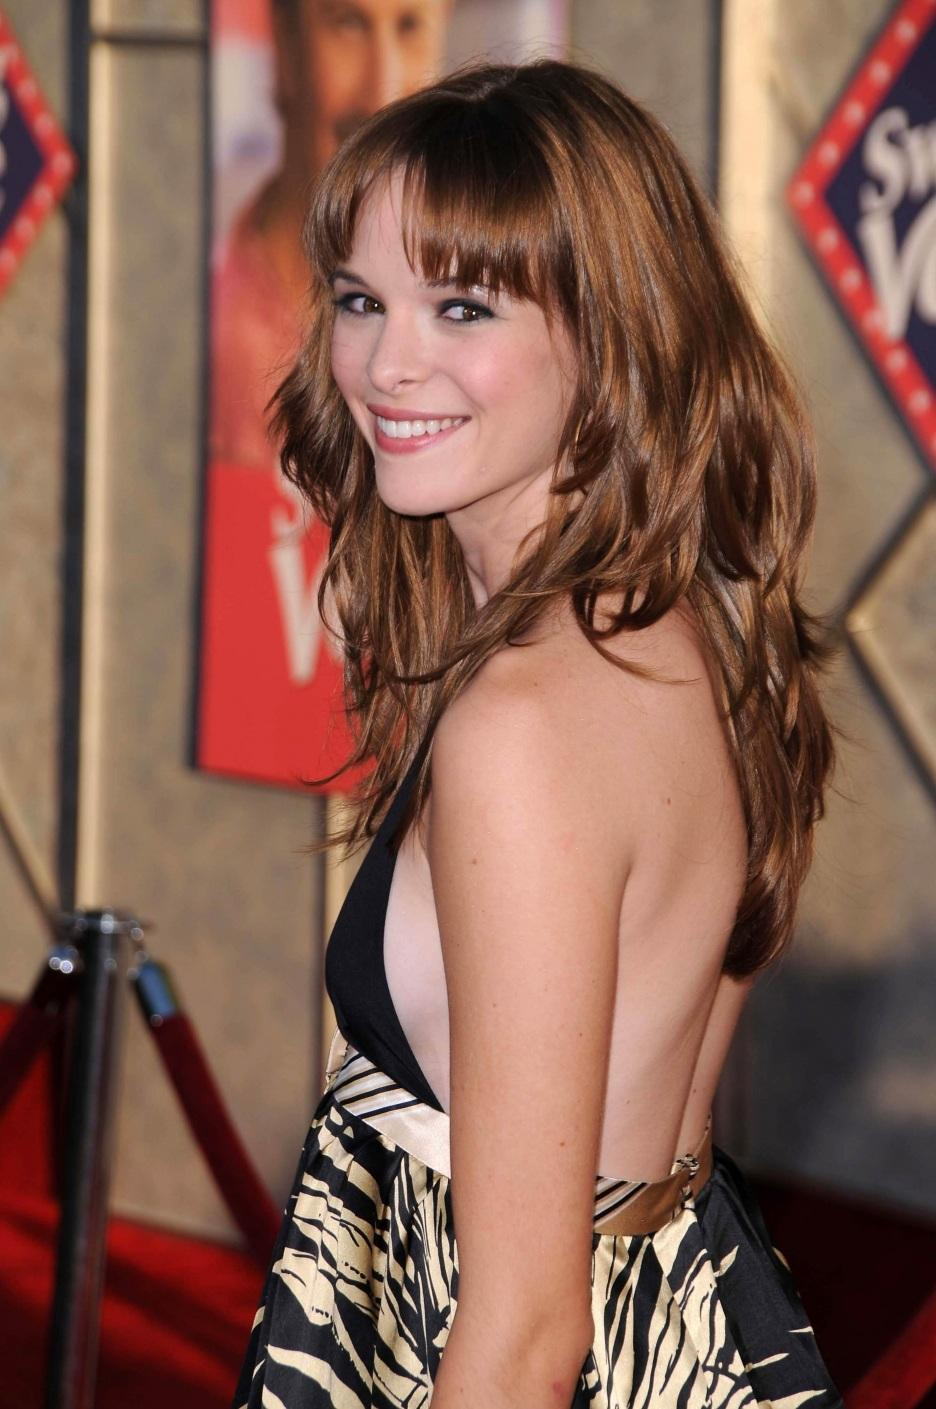 danielle panabaker gifdanielle panabaker gif, danielle panabaker instagram, danielle panabaker site, danielle panabaker and grant gustin, danielle panabaker with boyfriend, danielle panabaker insta, danielle panabaker tumblr gif, danielle panabaker wikipedia, danielle panabaker and hayes robbins, danielle panabaker husband, danielle panabaker young, danielle panabaker sky high, danielle panabaker png, danielle panabaker celebmafia, danielle panabaker cole sprouse, danielle panabaker heels, danielle panabaker dance, danielle panabaker website, danielle panabaker elizabeth henstridge, danielle panabaker songs